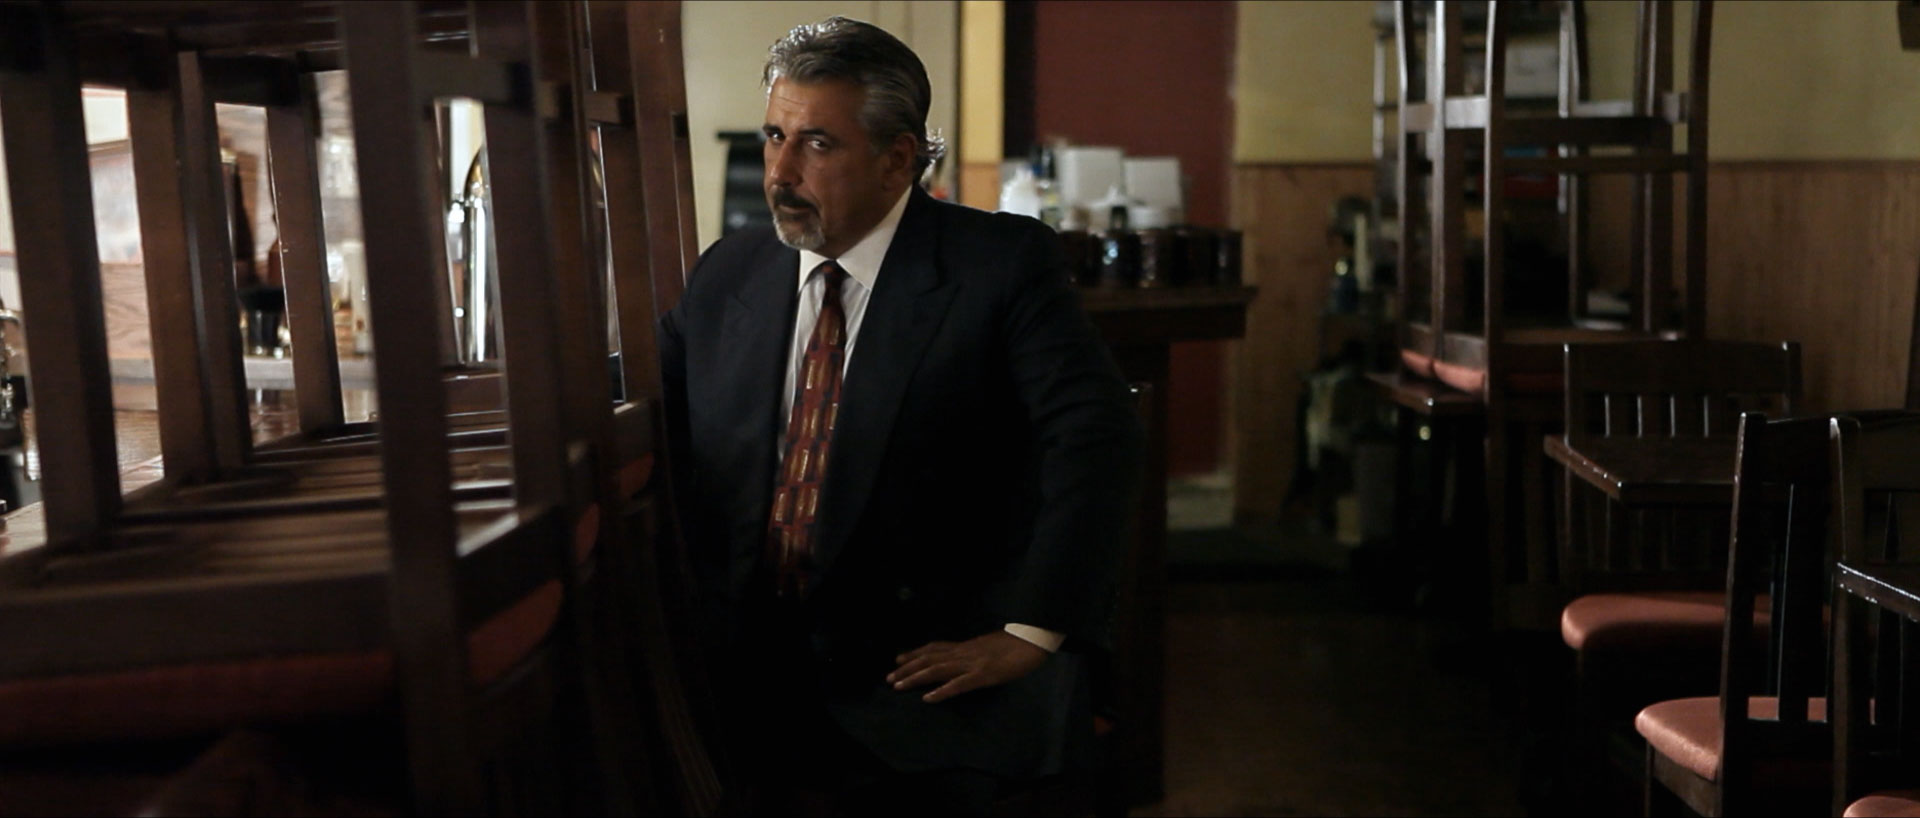 """Frank Longo as """"The Rival Mobster"""""""